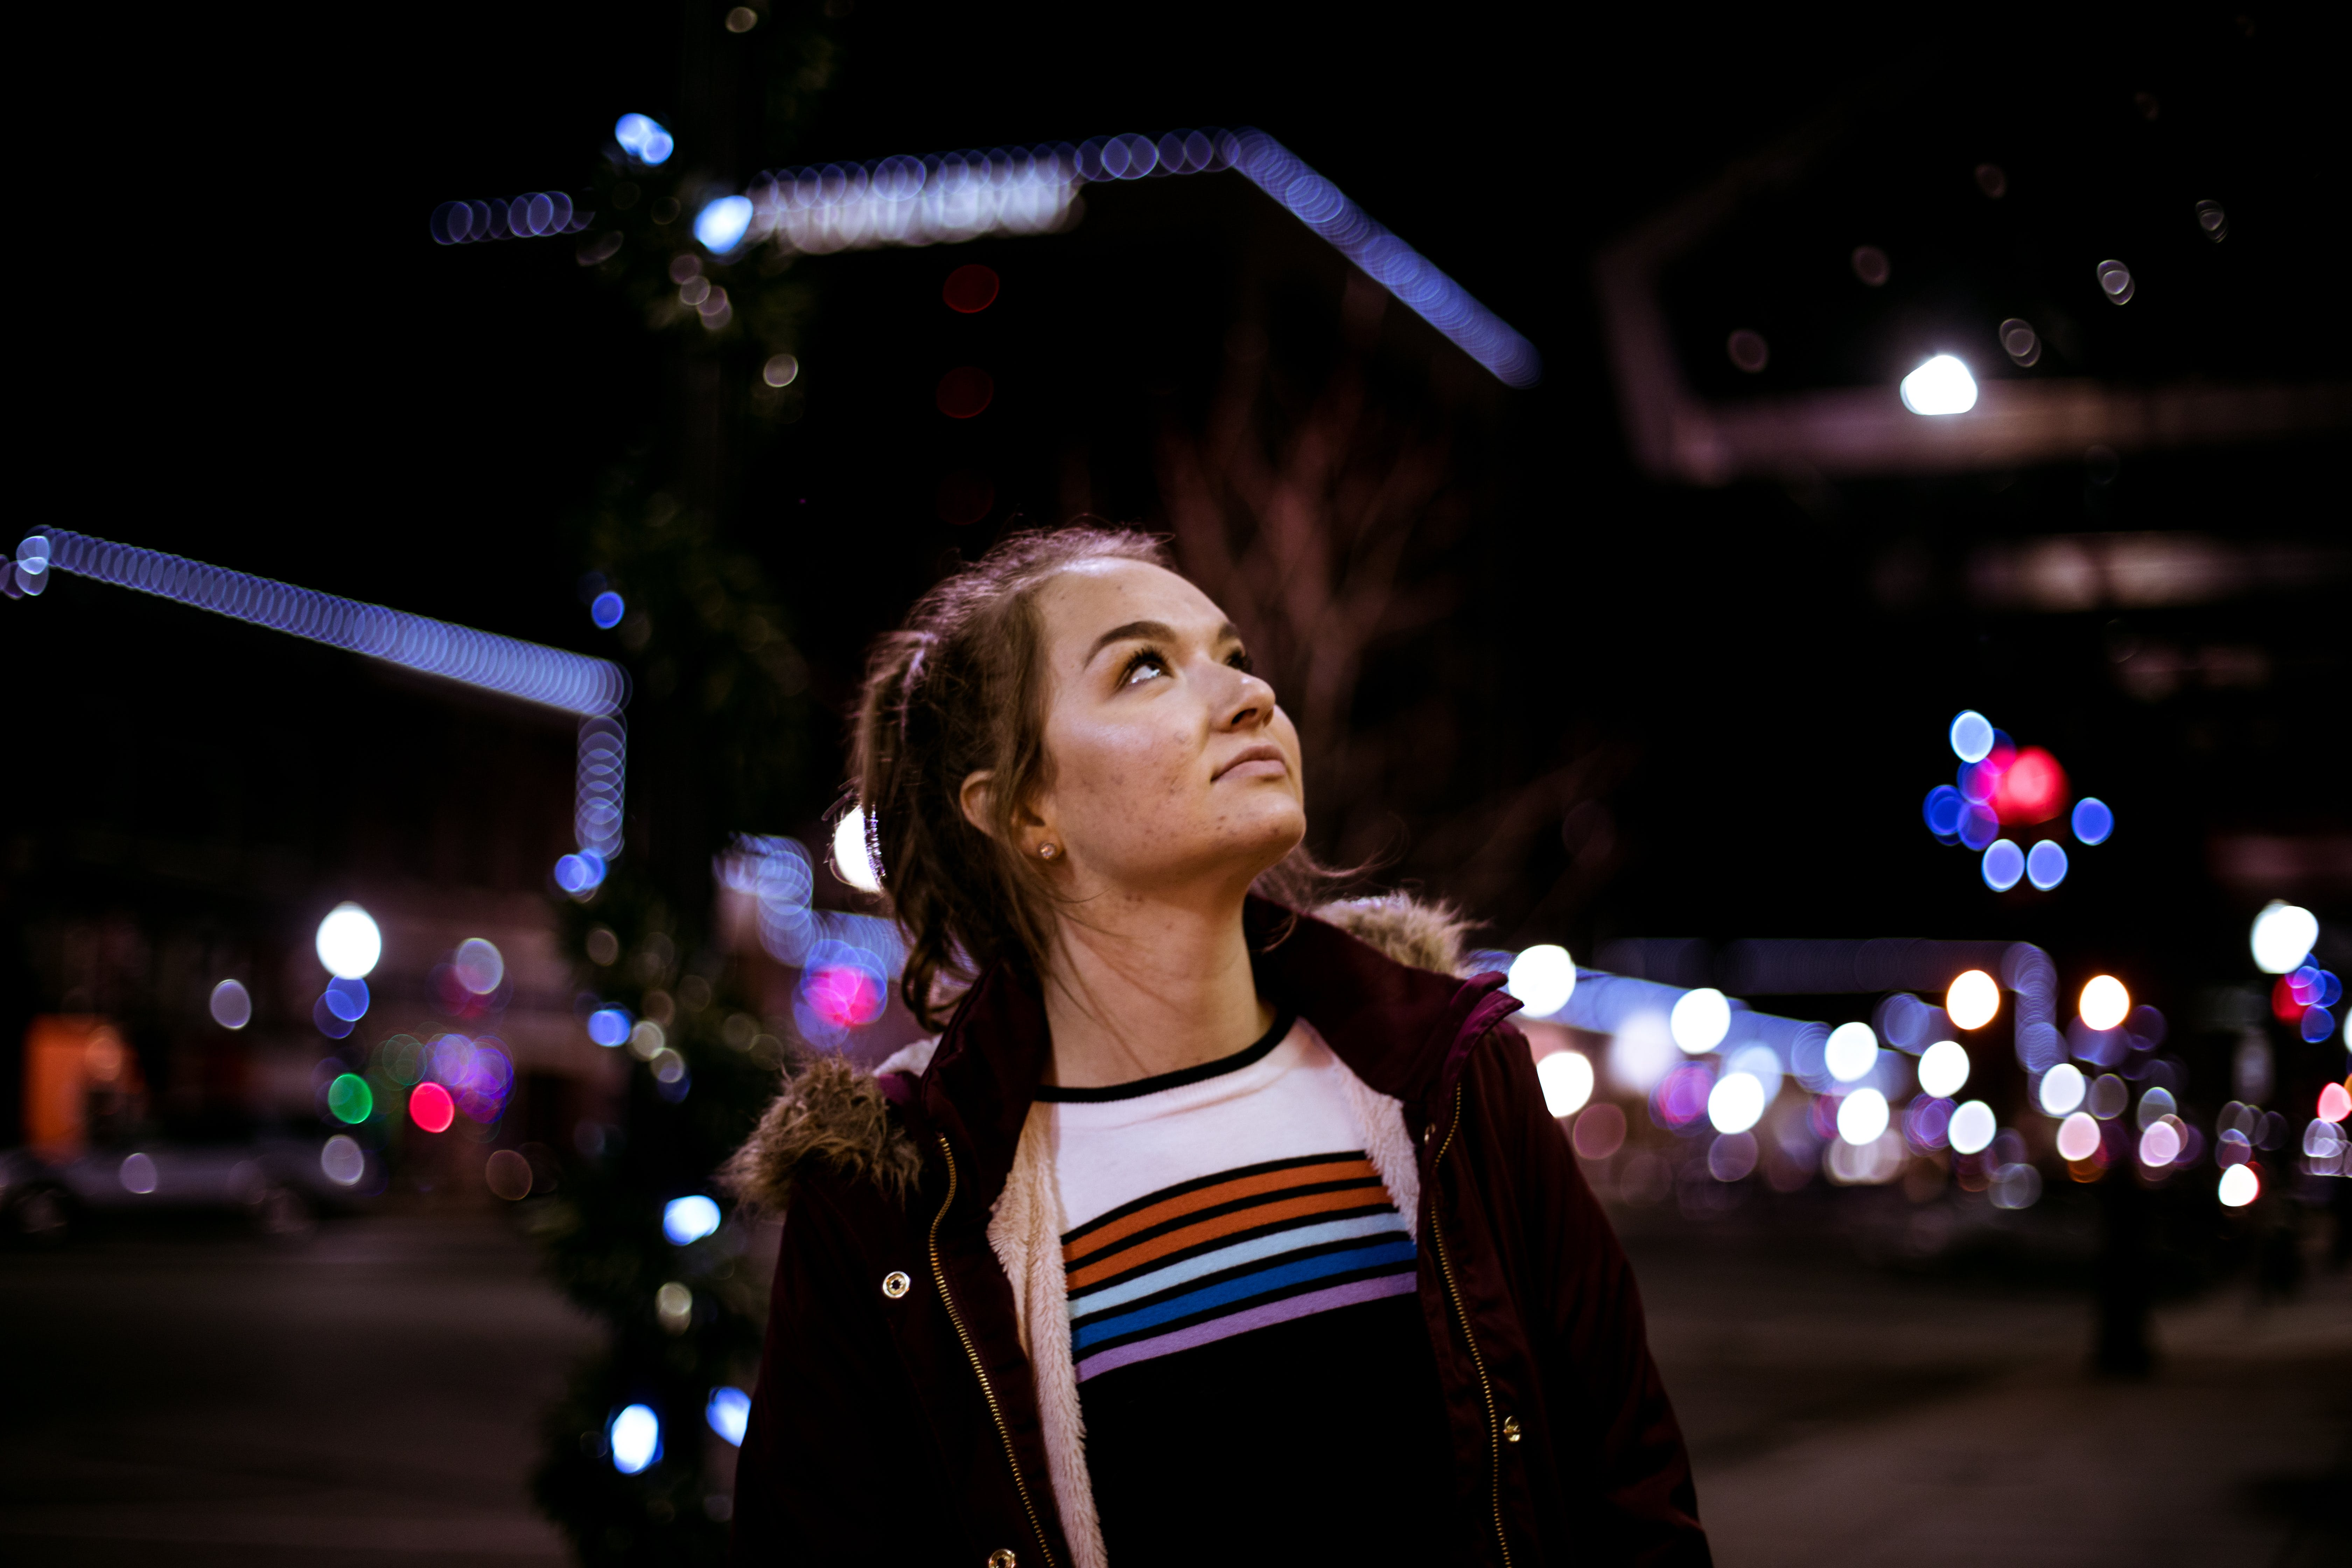 Woman Looking Up during Night Time